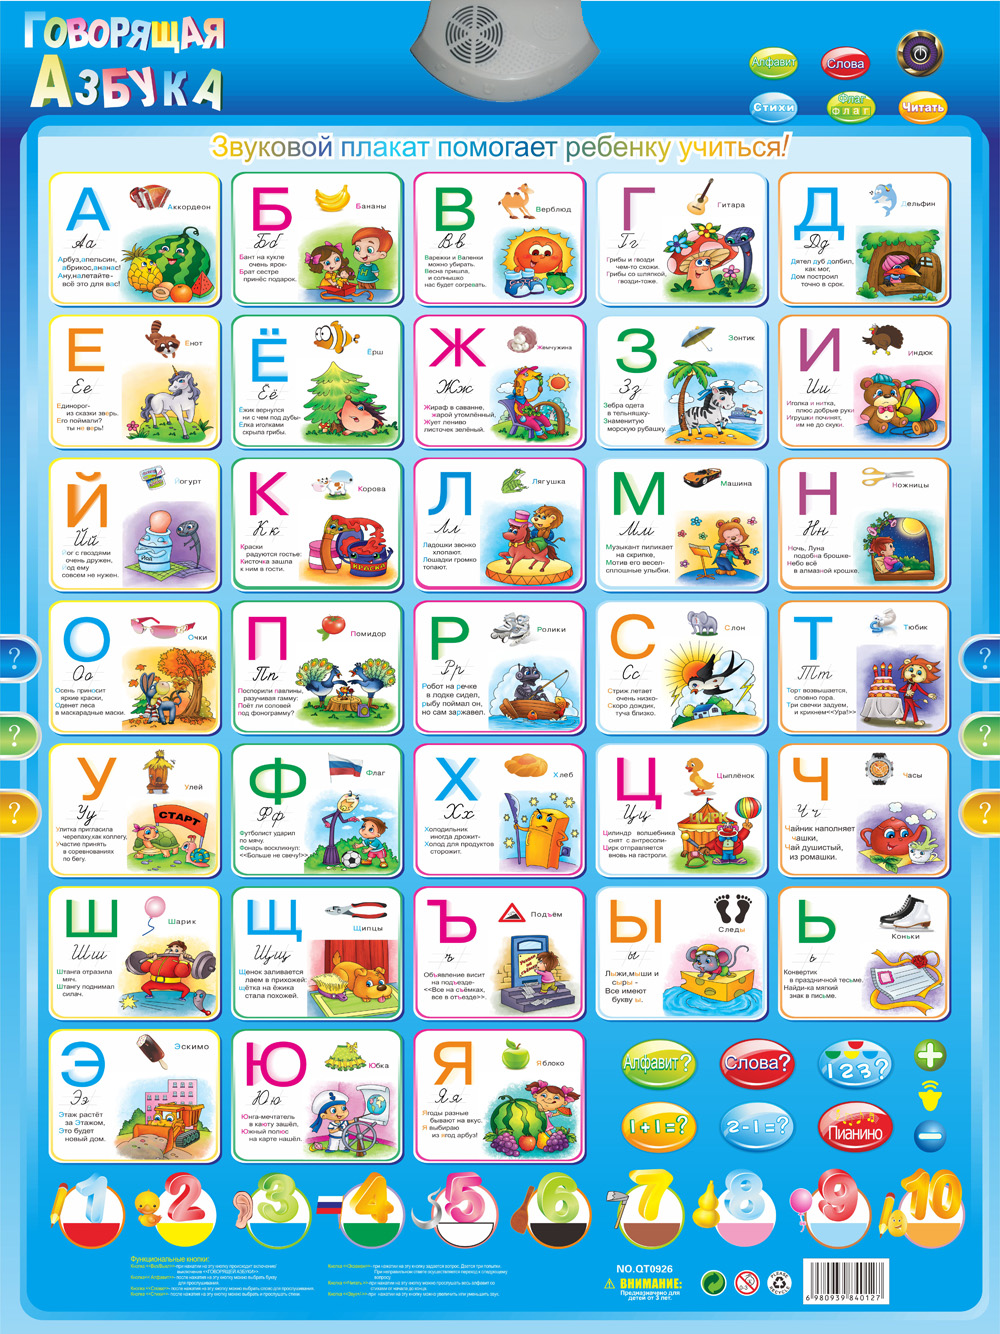 Printables Abcd Chart World online buy wholesale abc chart from china wholesalers special russian language electronic baby alphabet sound infant early learning education phonetic chart